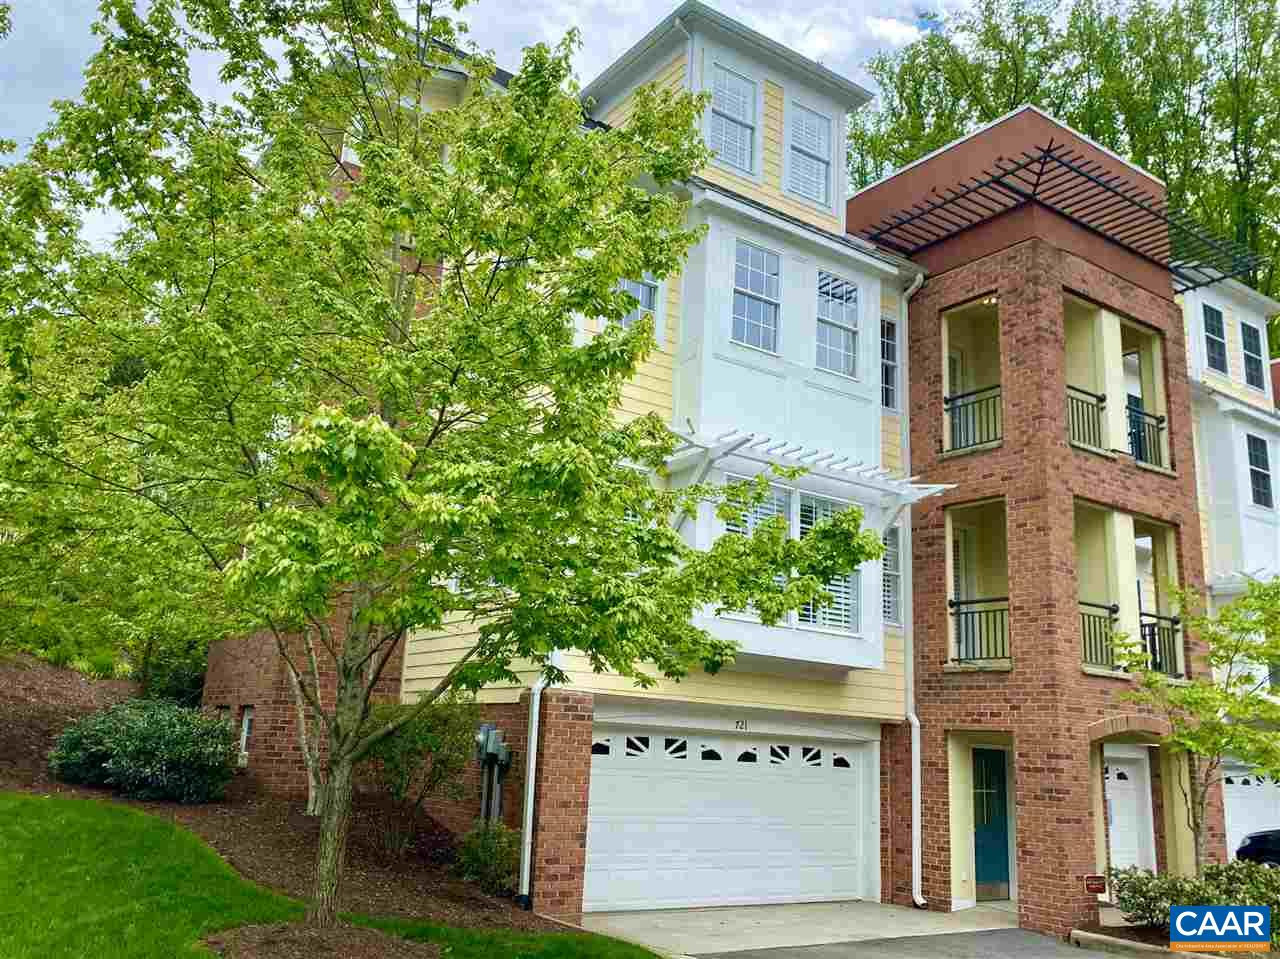 Stunning End Unit with Blue Ridge views in an ideal location w/in minutes to Downtown C'ville, Boars Head, Farmington and w/in walking distance to Scott Stadium, JPJ Arena. Open concept living on main level complete w/ 2 sided gas fireplace. Large chefs kitchen opens to a professionally landscaped blue stone rear patio with wrap around brick and iron decorative railing. Master bedroom on 3rd floor is large and boasts numerous windows for added natural light, large walk in California closet, en -suite bath complete with soaking tub and double sink vanity. 2nd en-suite bedroom on 3rd floor. 4th fl. offers 2 additional bedrooms and full bath. Ground level 2 car garage and storage room. Home includes an Elevator from garage to all floors.